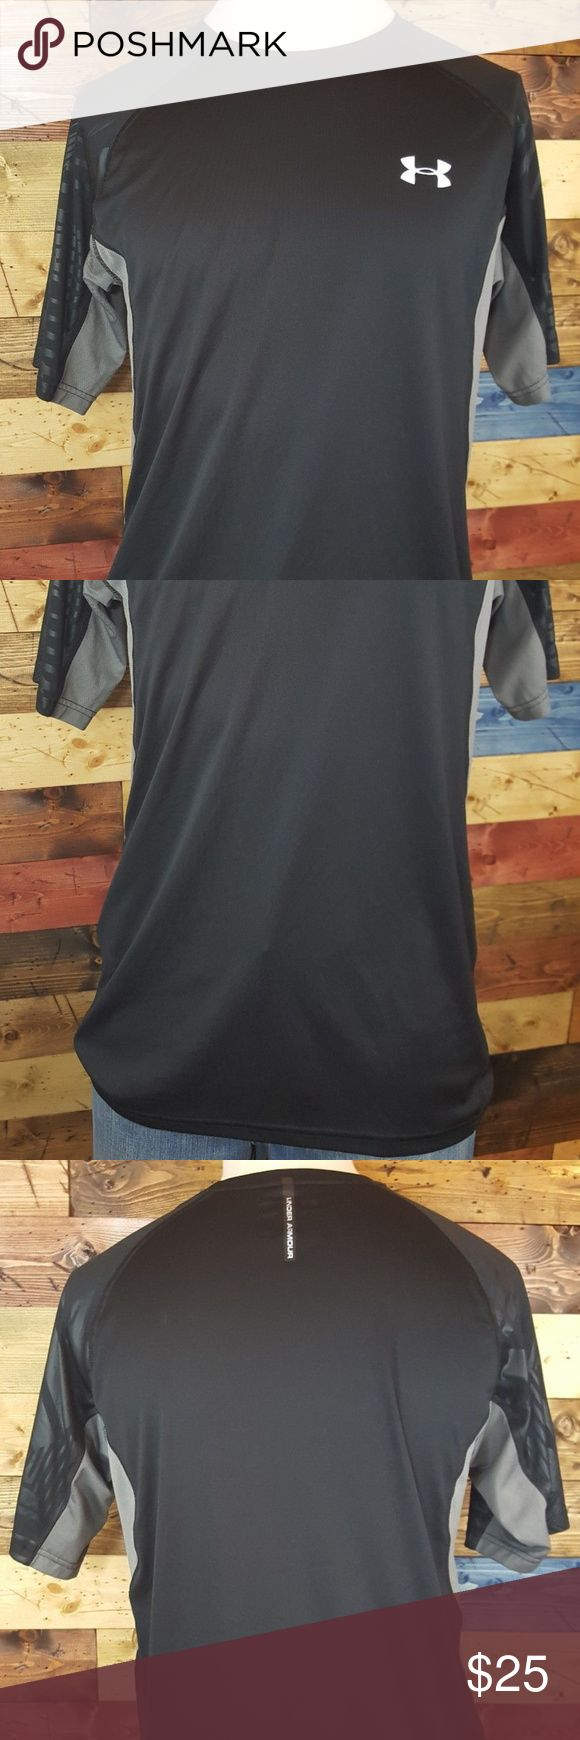 Under Armour Cold Black Heat Gear Regular Fit Med Super clean condition.  No holes, rips snags or stains.  Perfect for back to school or athletics events! Under Armour Shirts Tees - Short Sleeve